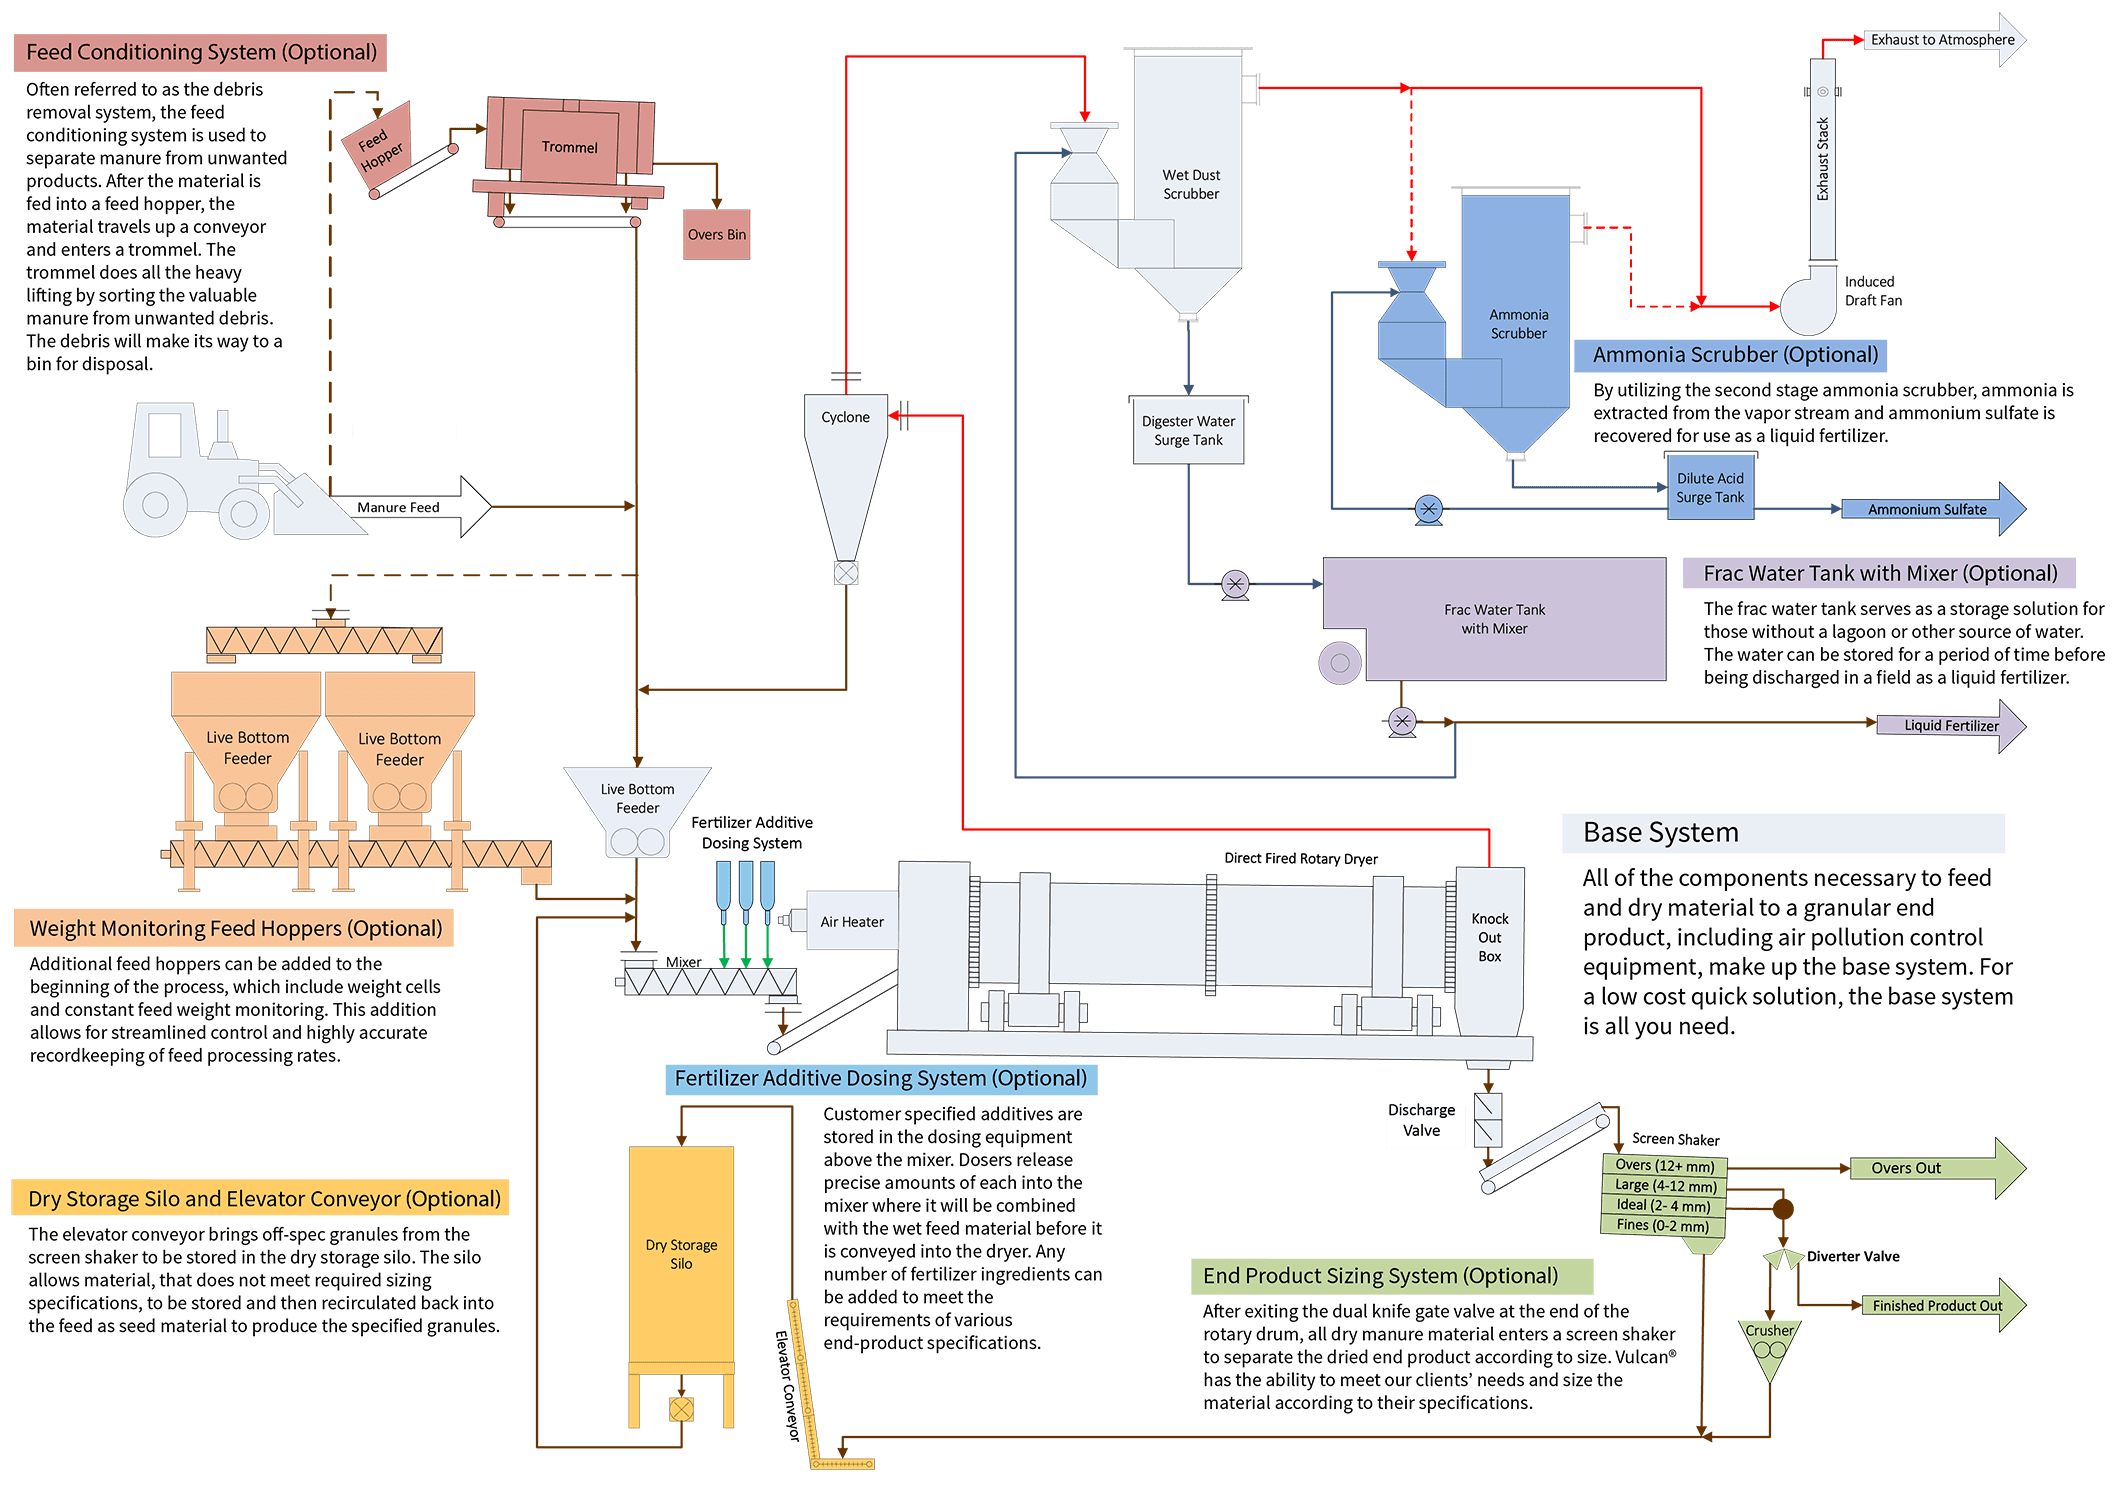 animal-manure-process-flow-diagram